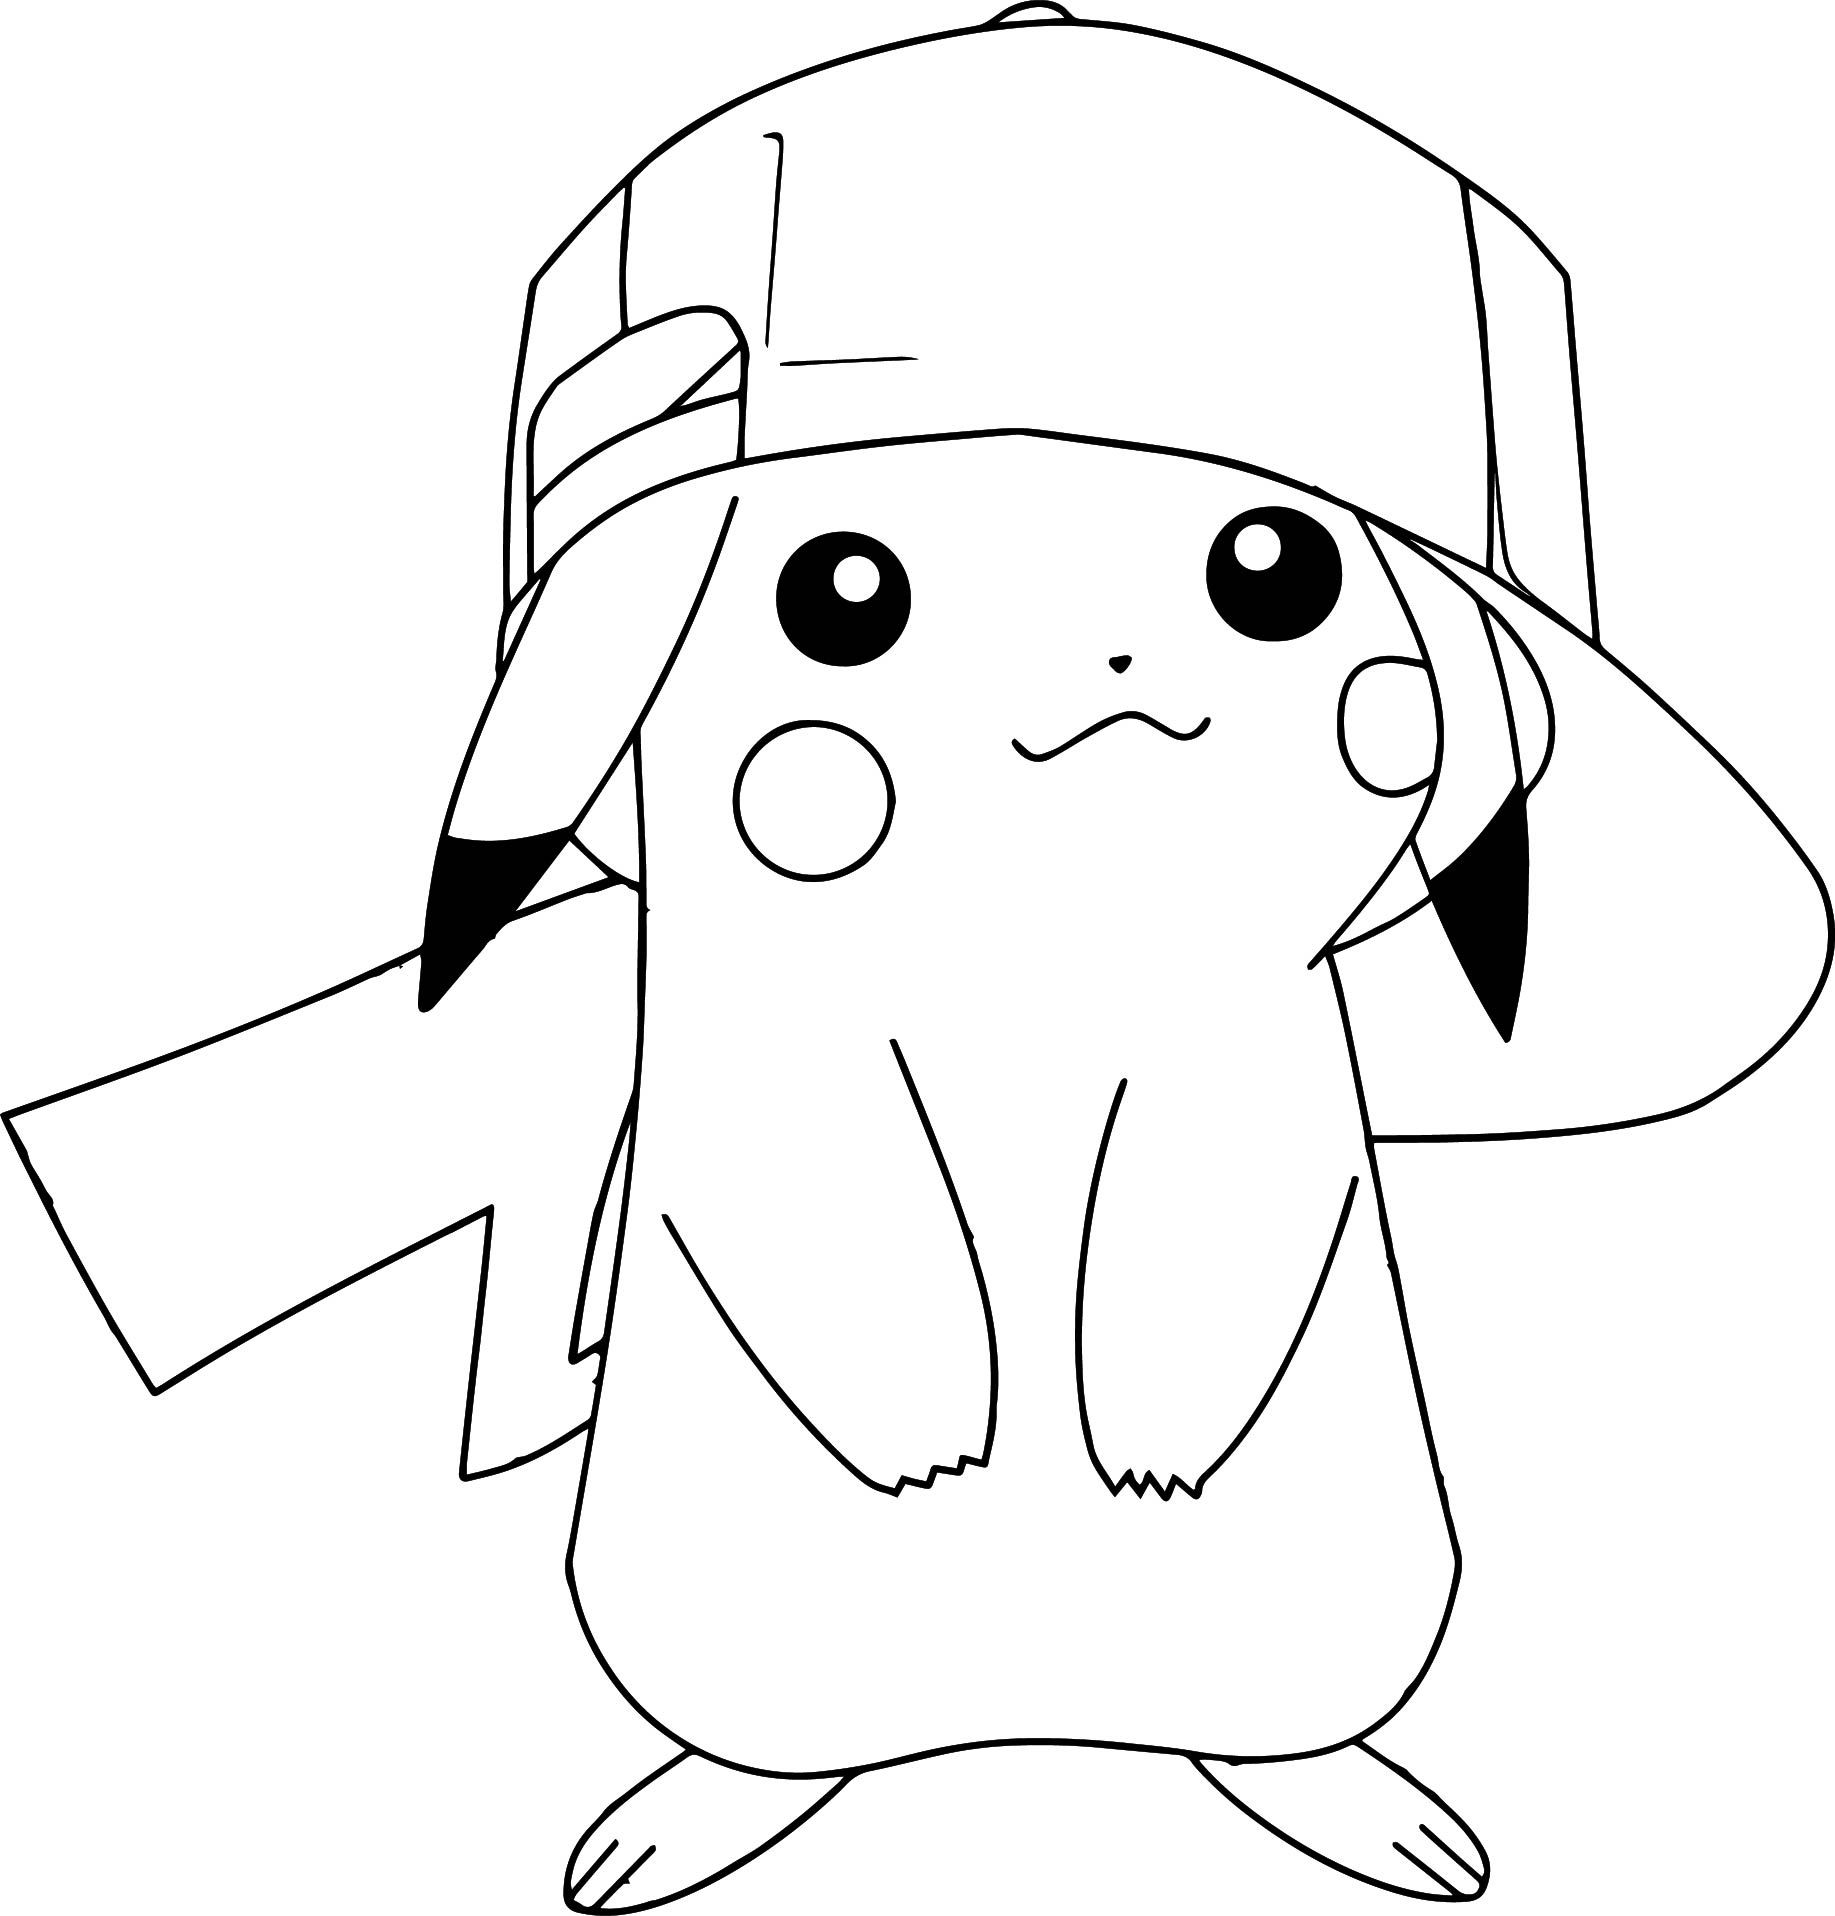 Pikachu Face Coloring Page From The Thousands Of Photos On The Net Regarding Pikachu Face Color Pikachu Coloring Page Pokemon Coloring Pokemon Coloring Pages